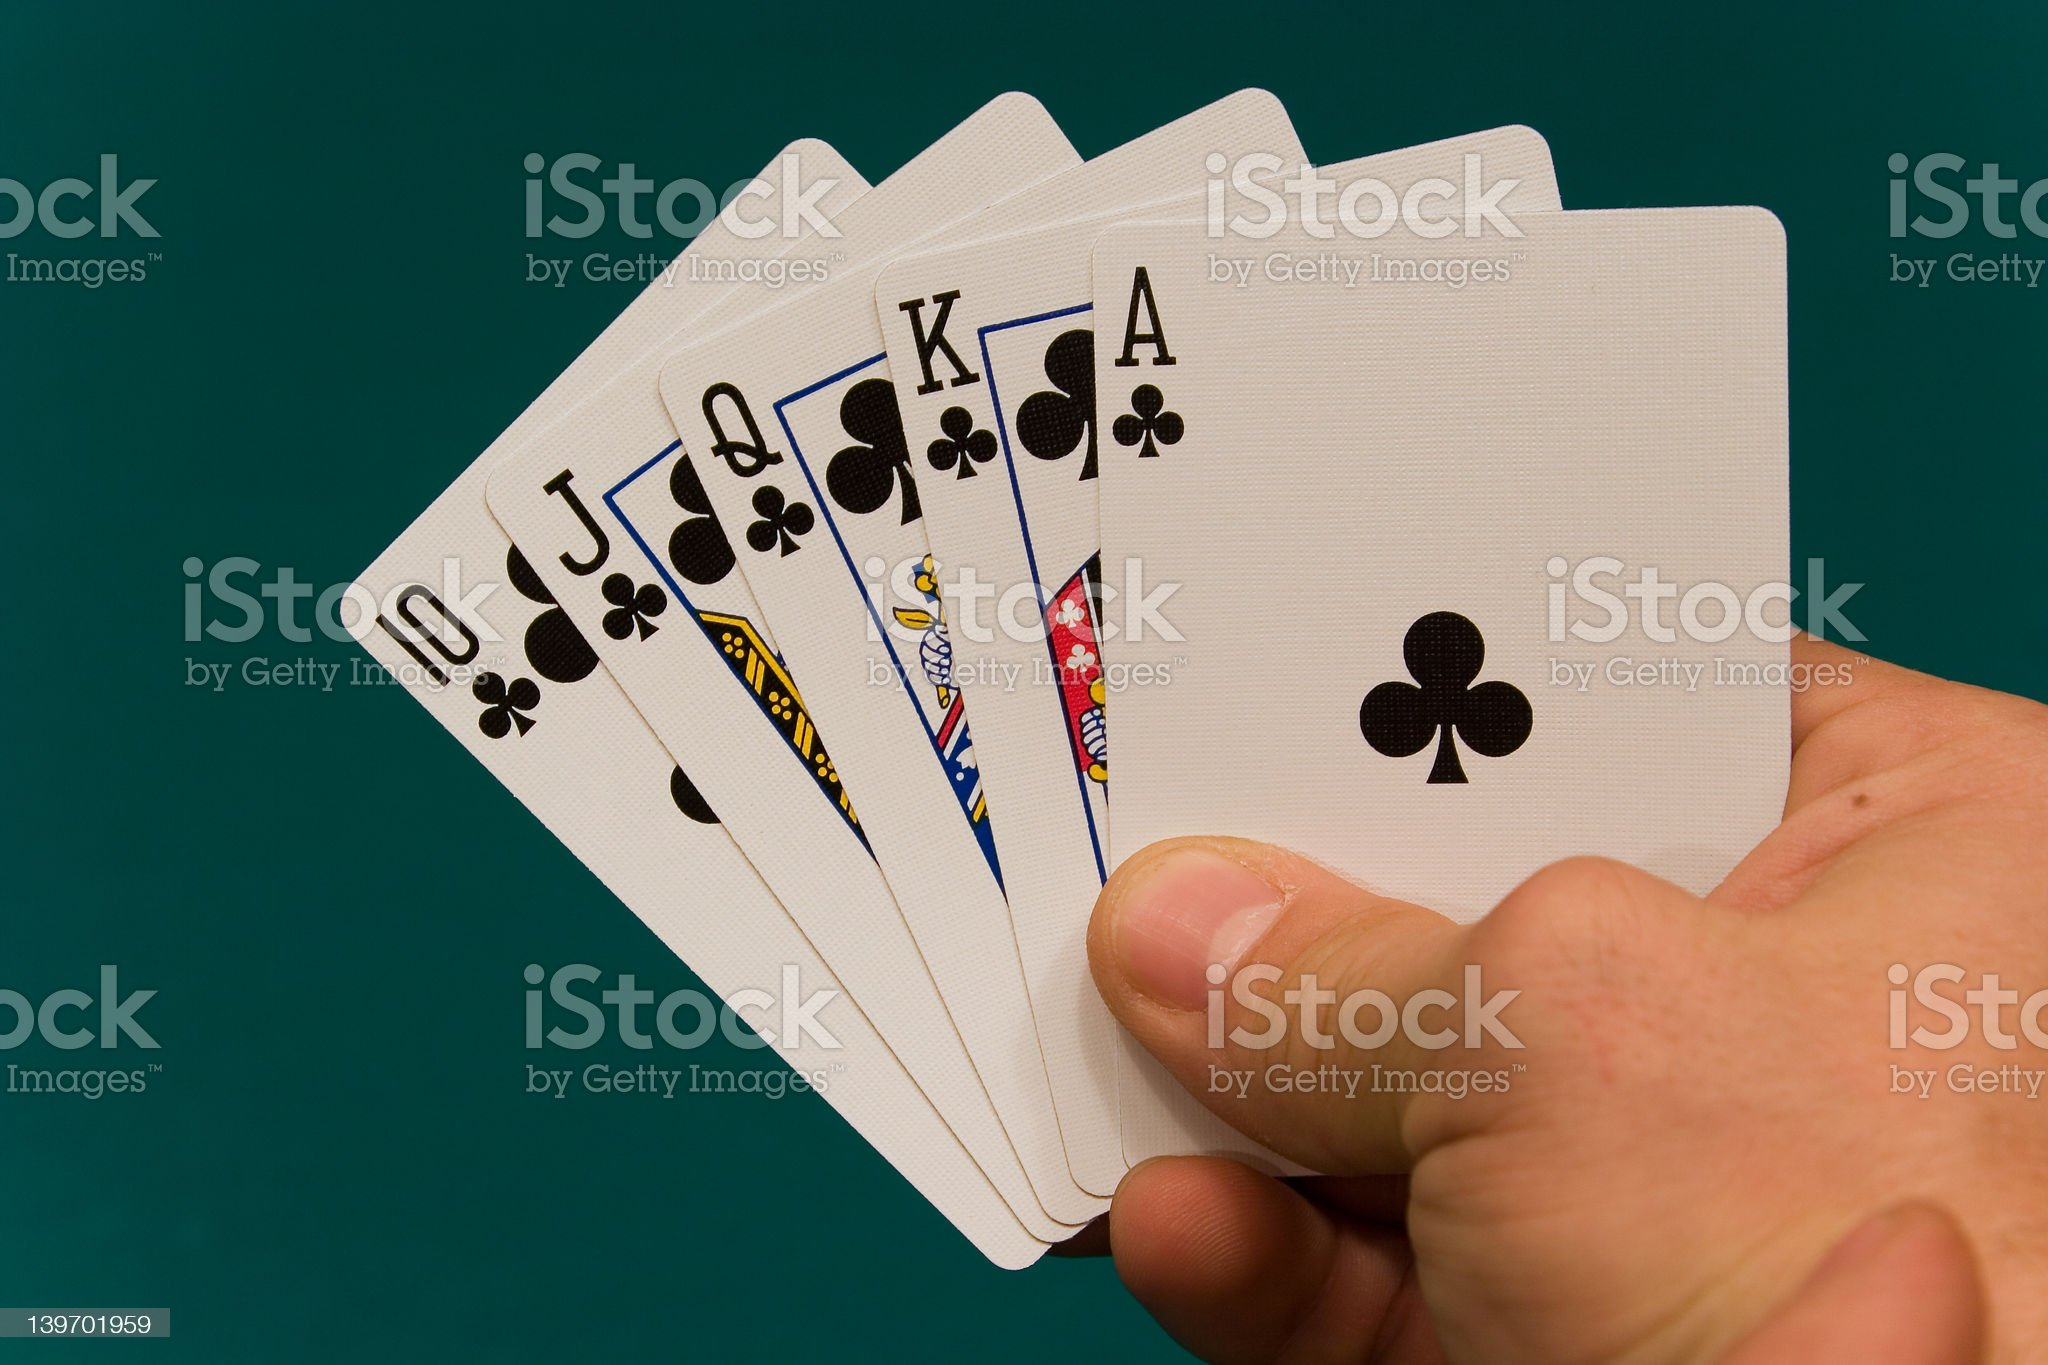 cards with hand 09 poker royal flush royalty-free stock photo